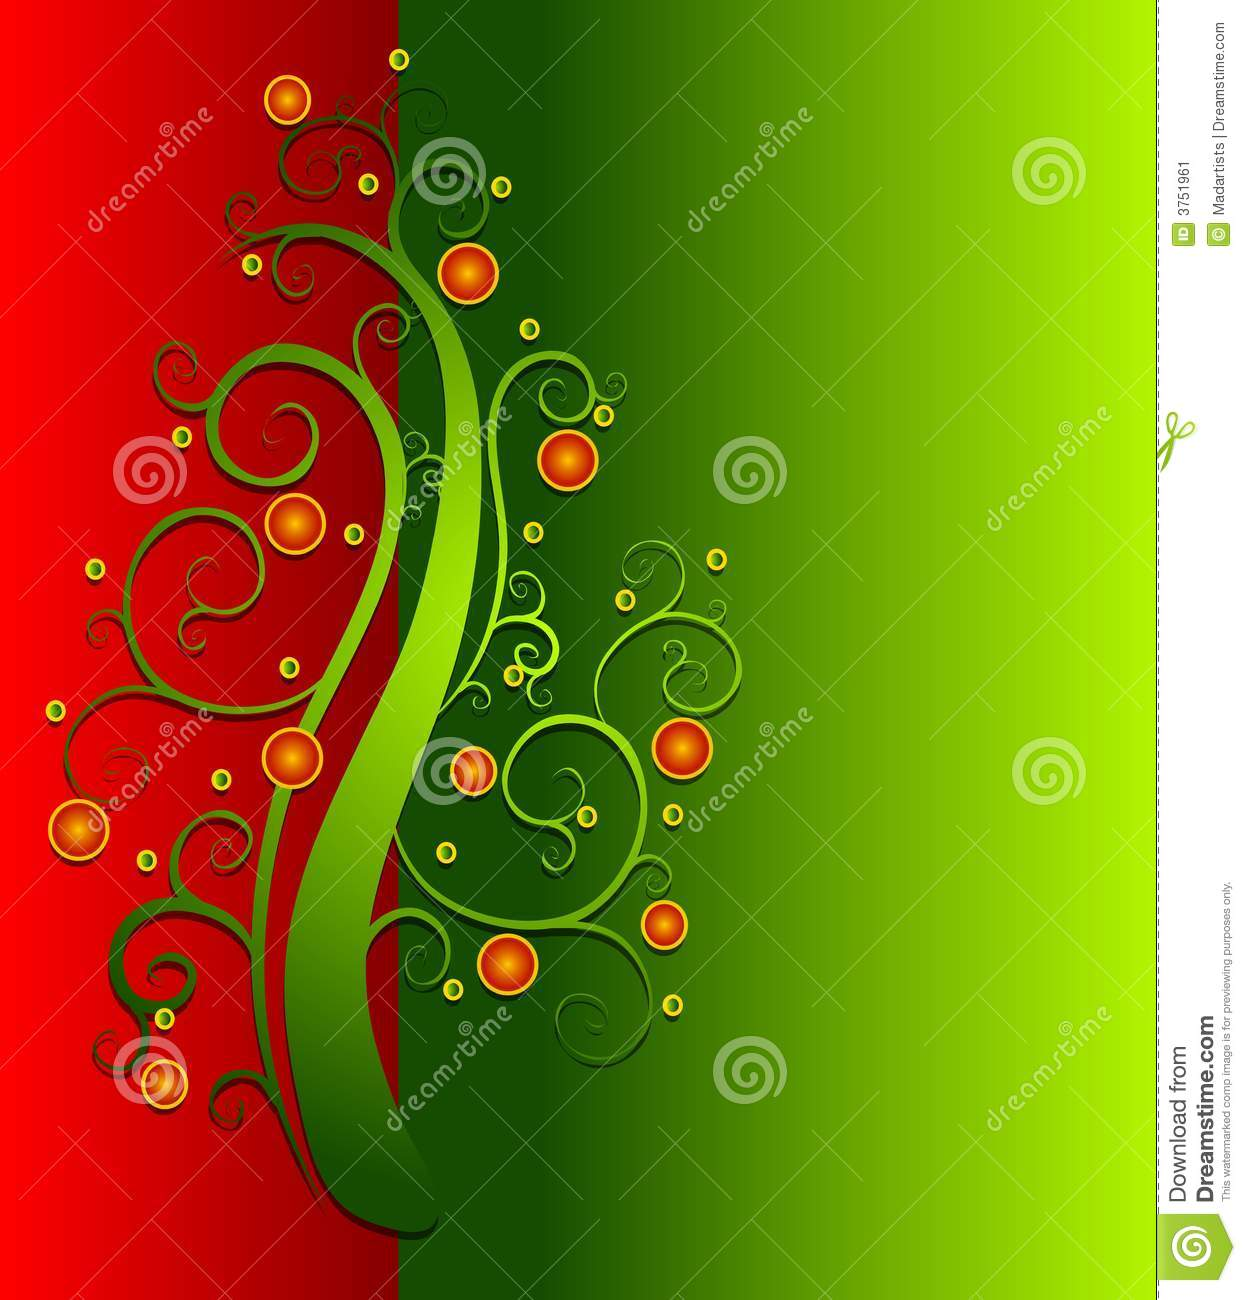 Tree decorated with ornaments set against red and green background